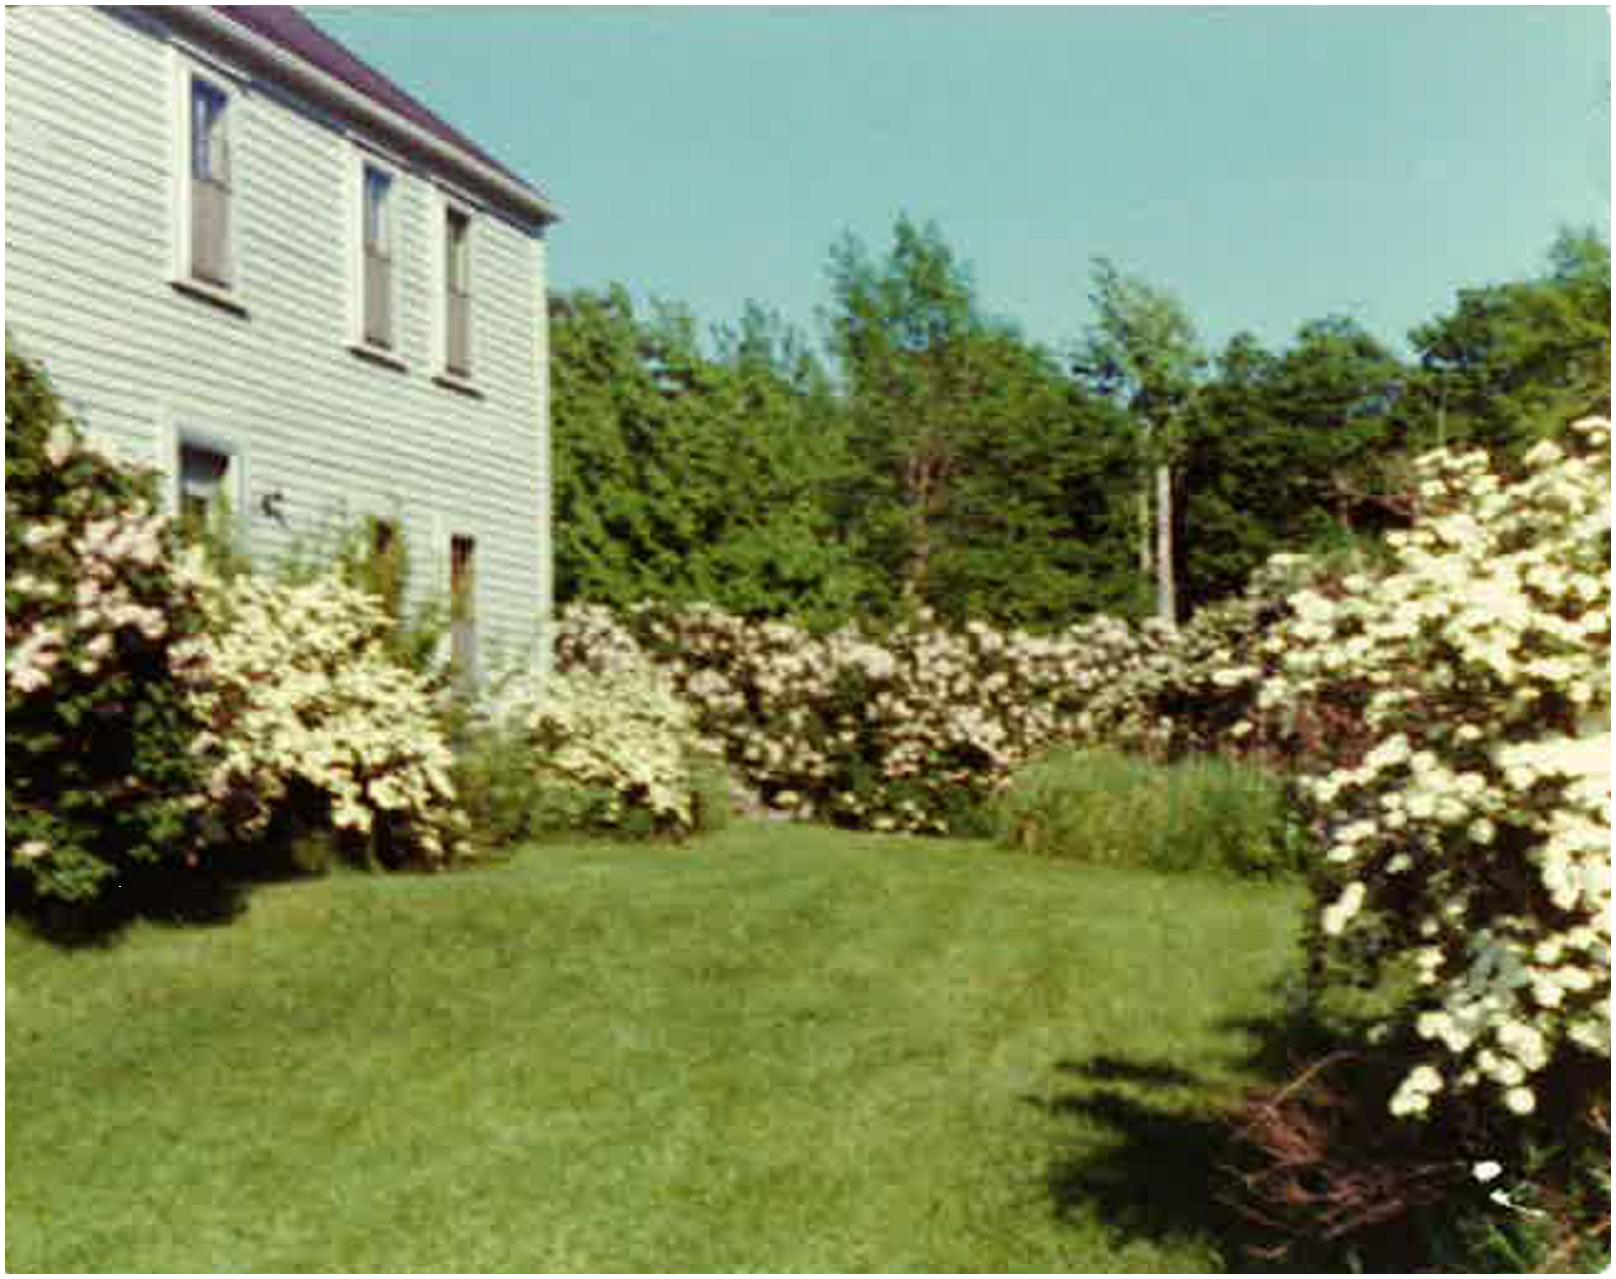 A photo by Mrs. Burke of her home and garden